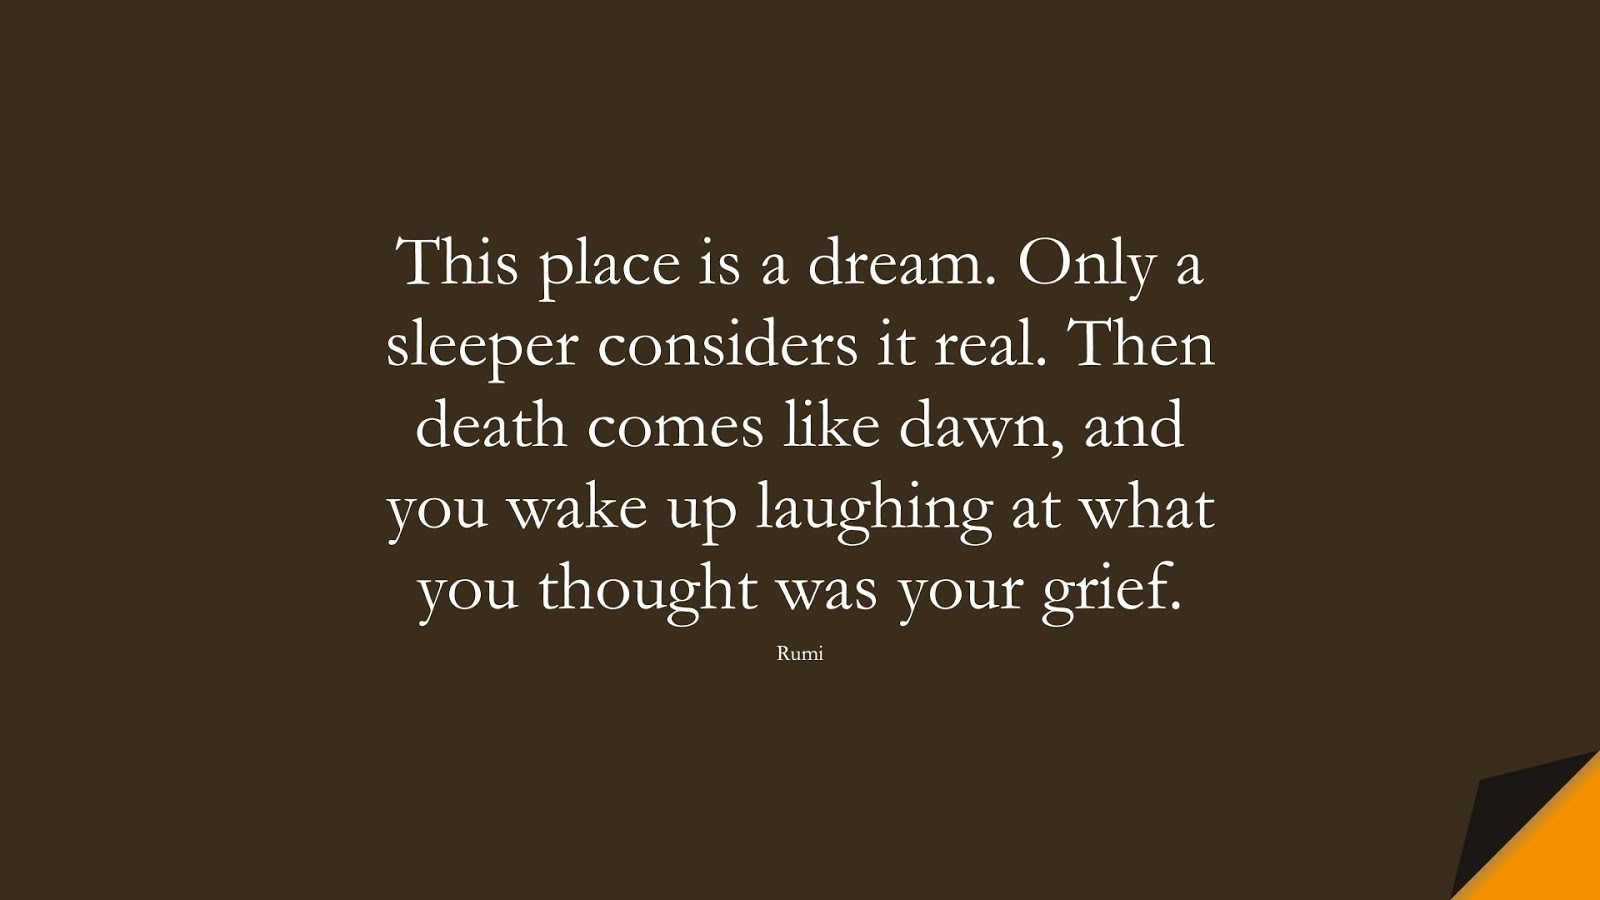 This place is a dream. Only a sleeper considers it real. Then death comes like dawn, and you wake up laughing at what you thought was your grief. (Rumi);  #RumiQuotes